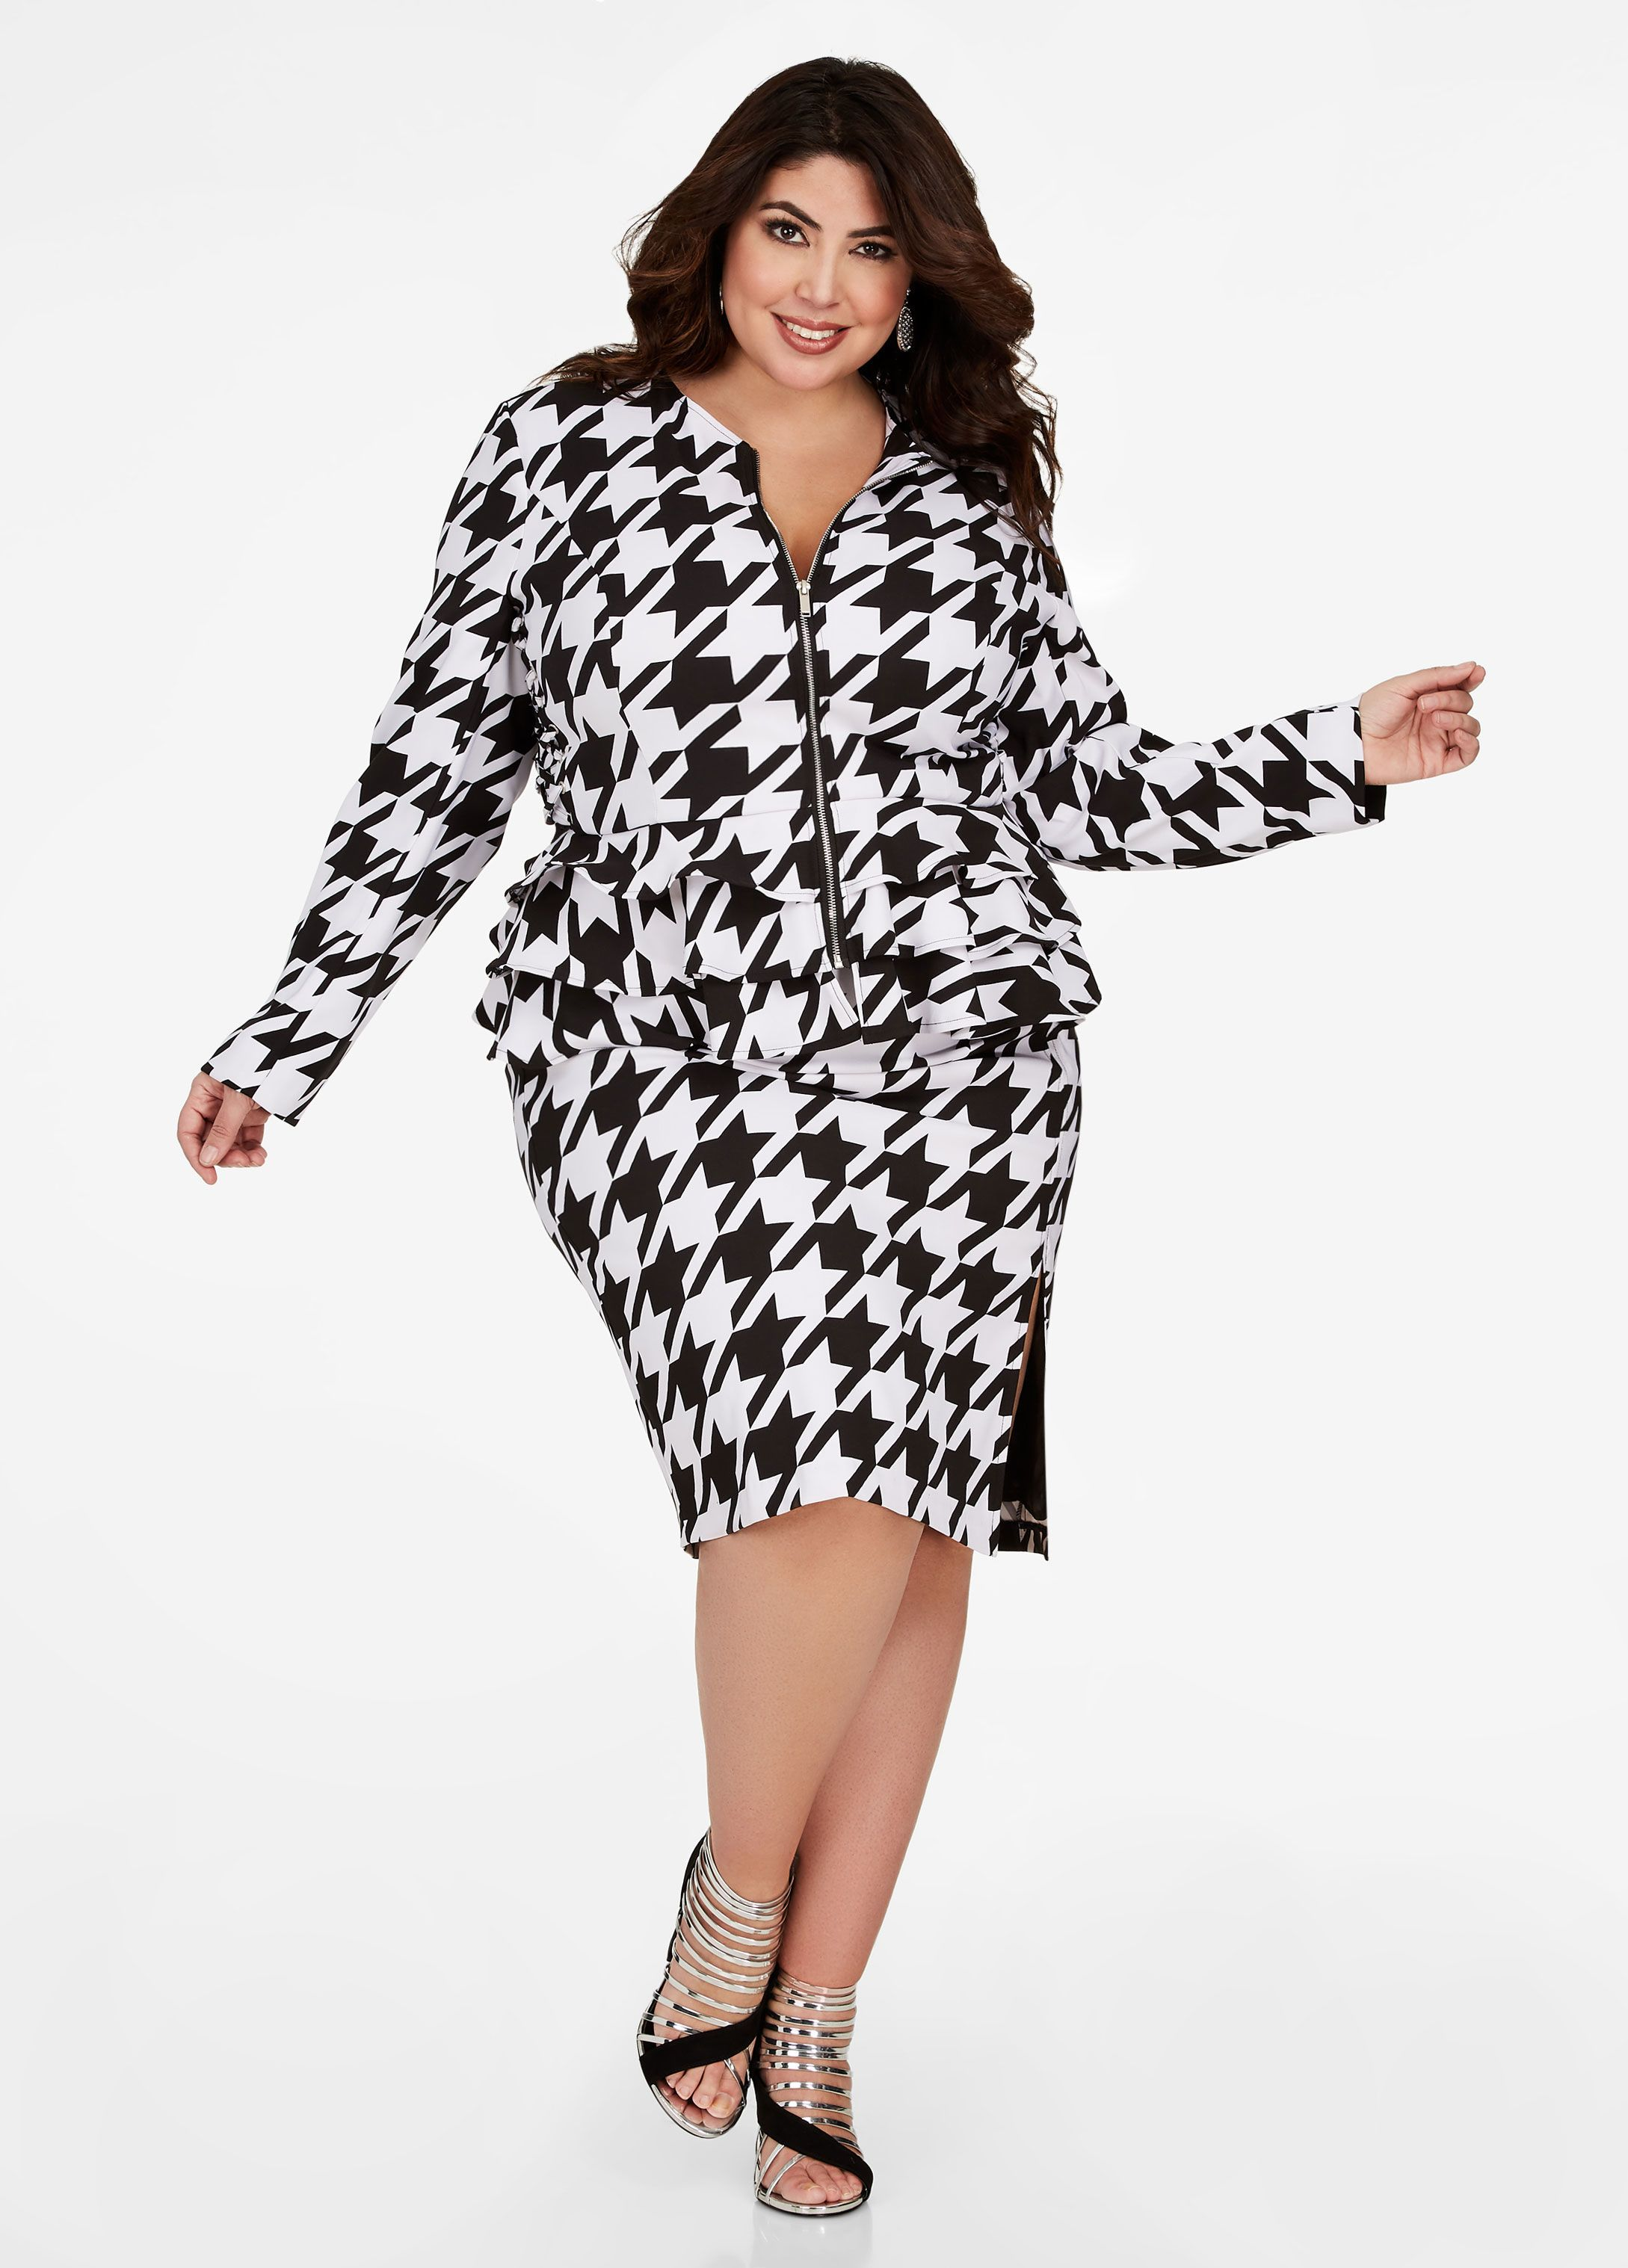 a2adb03fb2 Houndstooth Pencil Skirt - Ashley Stewart. Houndstooth Pencil Skirt - Ashley  Stewart Plus Size Suits ...